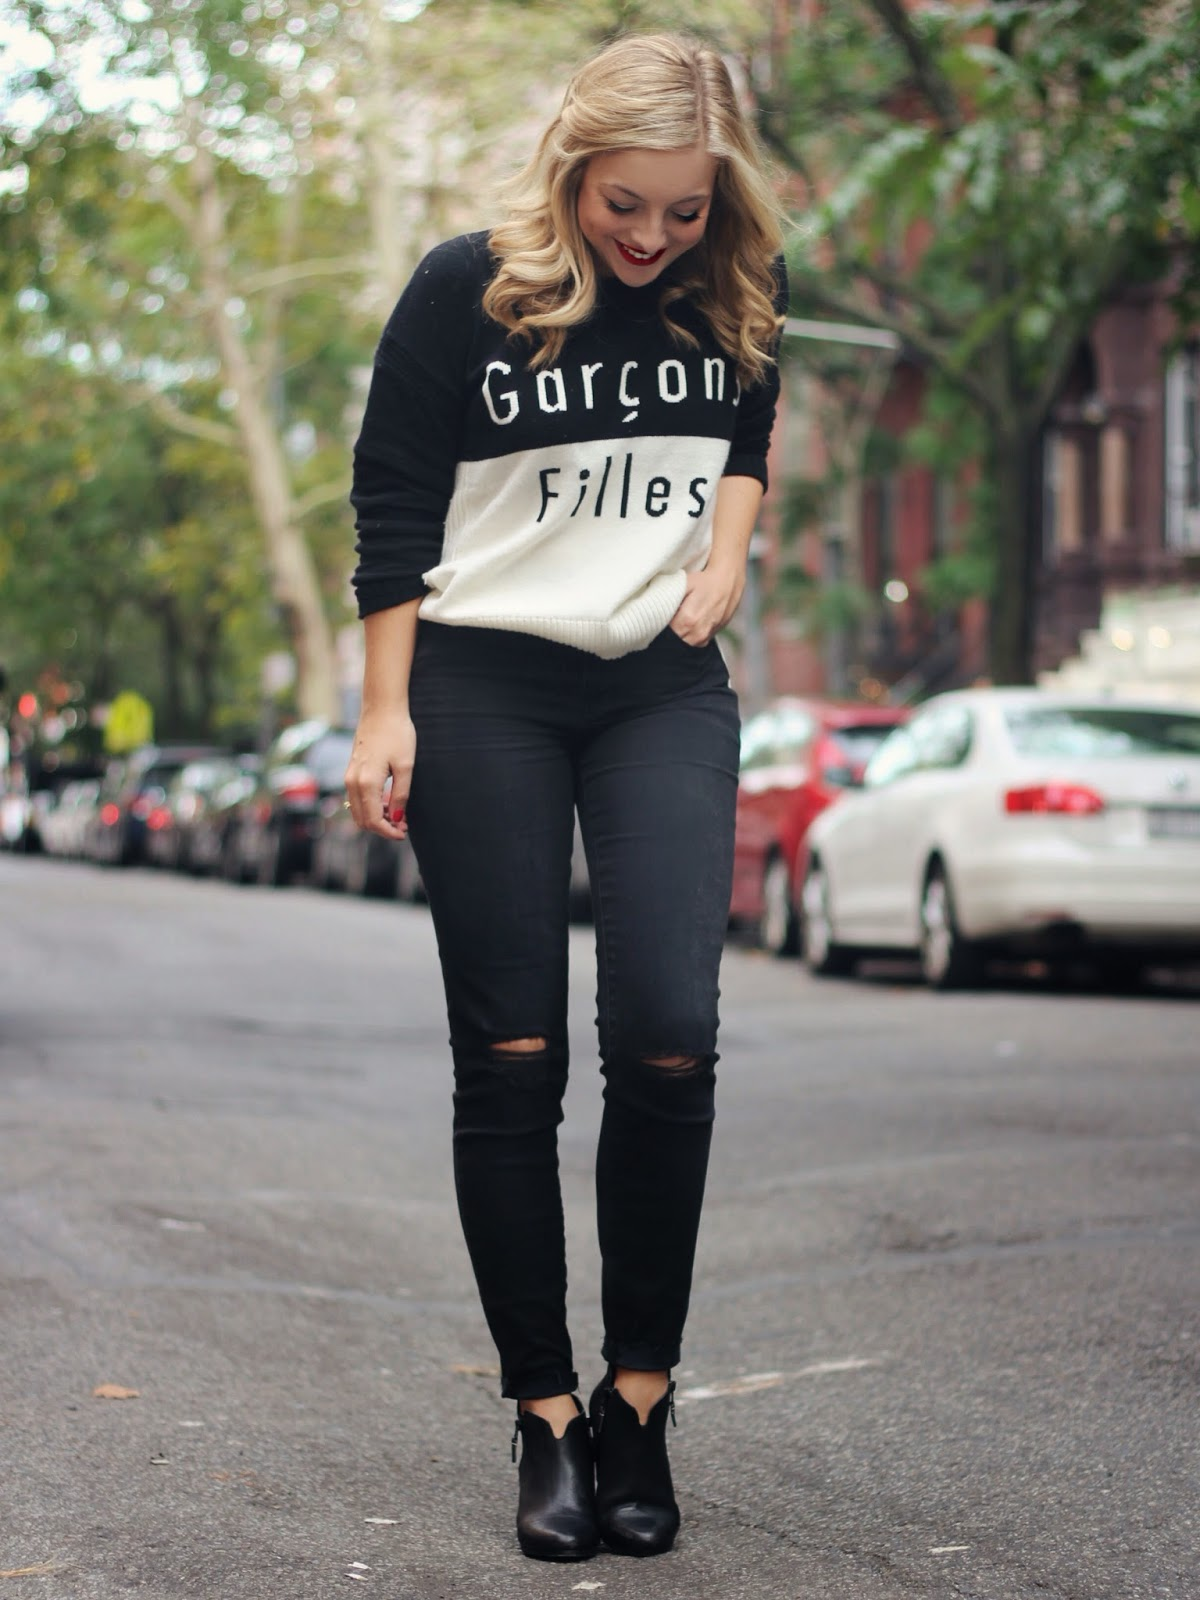 Madewell Filles Garcons Sweater Black High Rise Skinny Jeans Rag and Bone Margot Boots